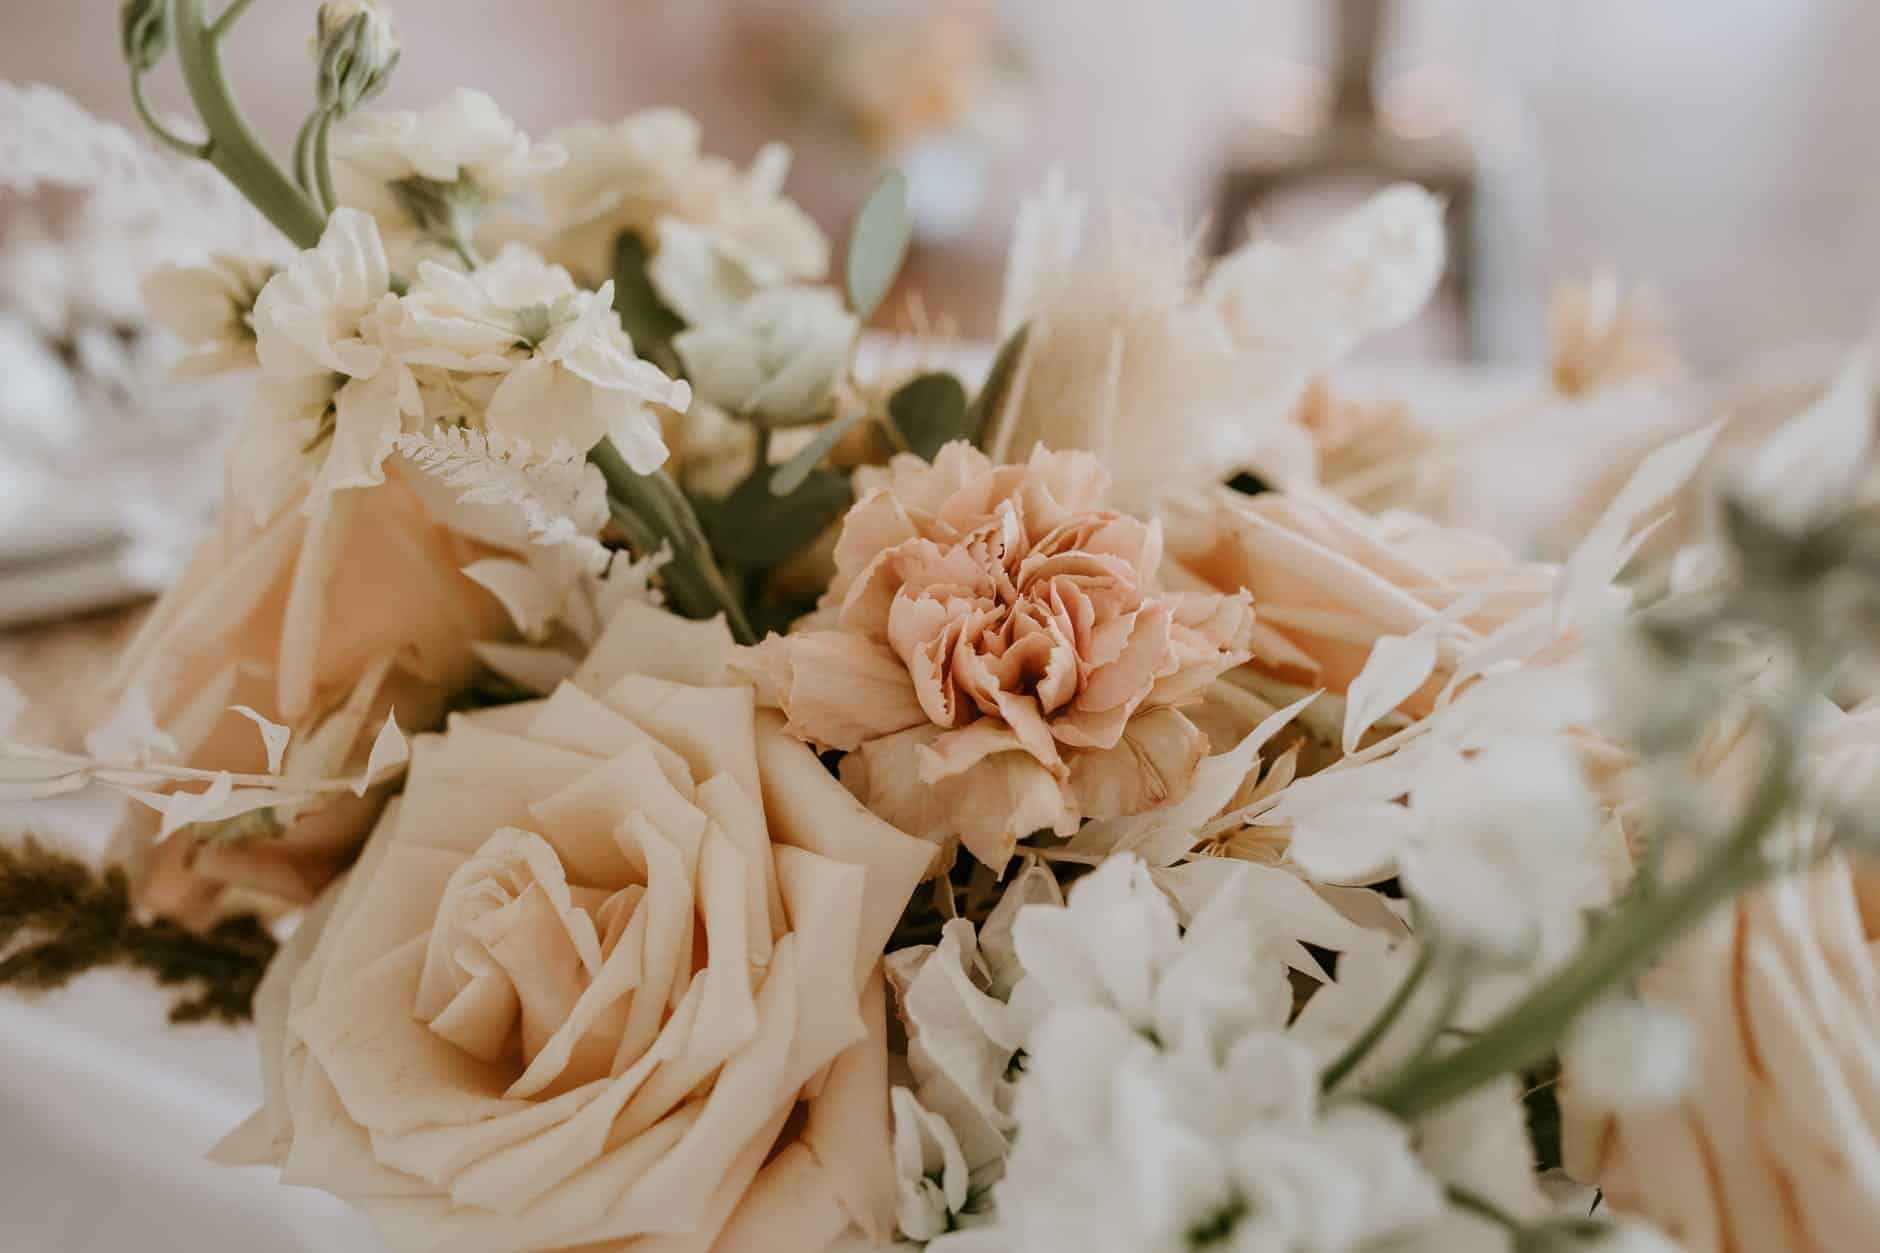 bouquet of fresh flowers decorating wedding table